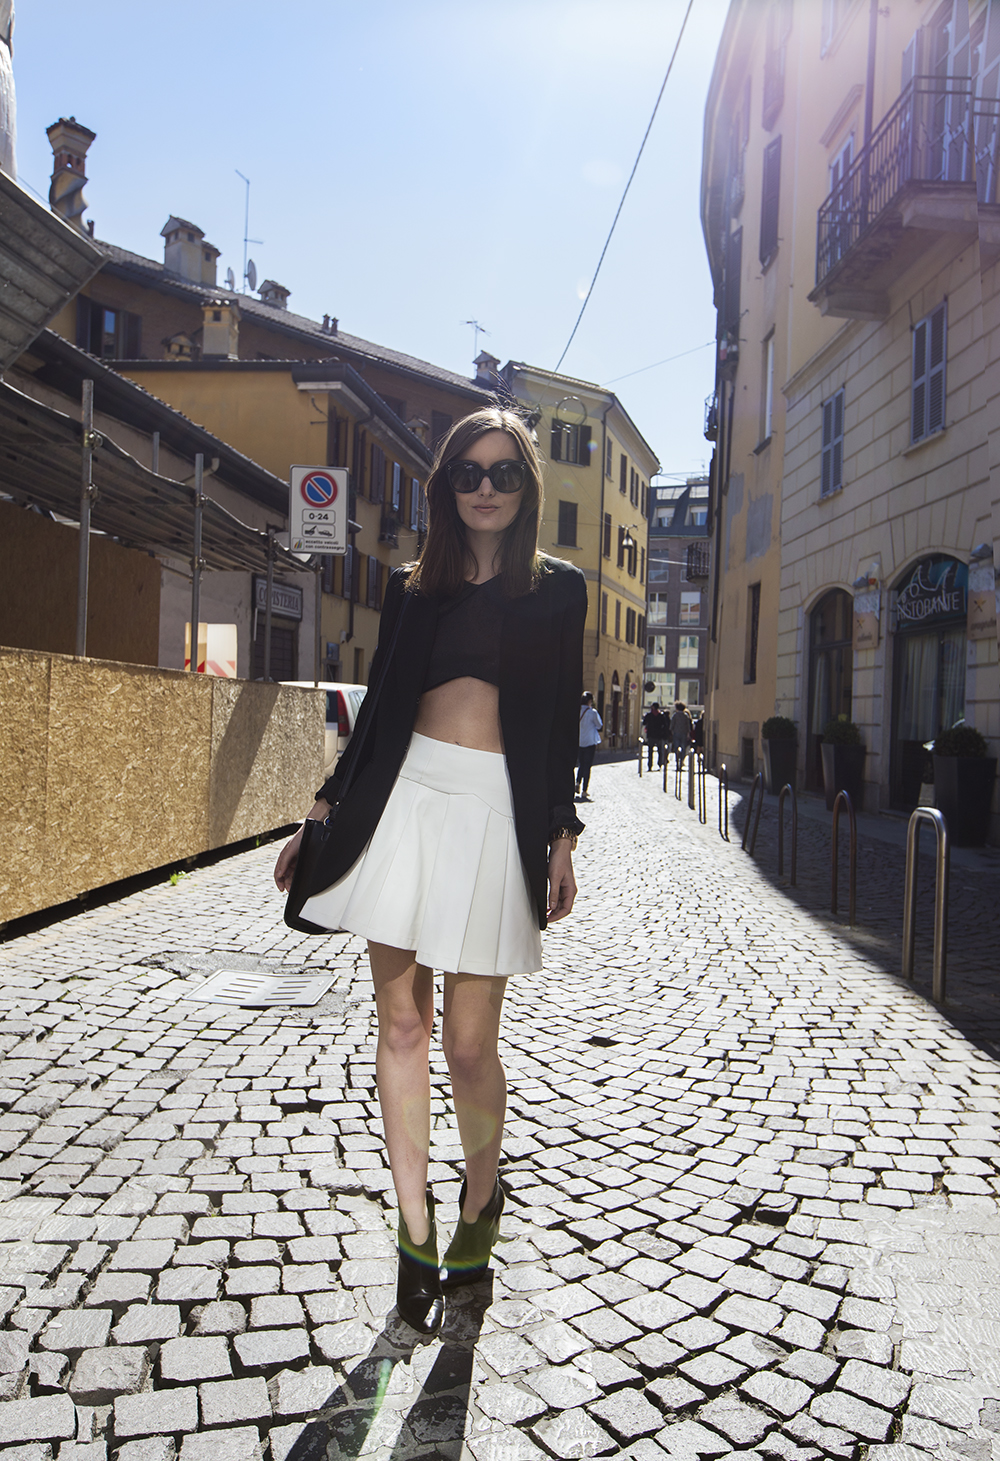 Anouska Is Wearing Black Blazer By Beneton, White Pleated Skirt And Black Top From Jovonna, Boots From Sigerson Morrison And Sunglasses From Céline